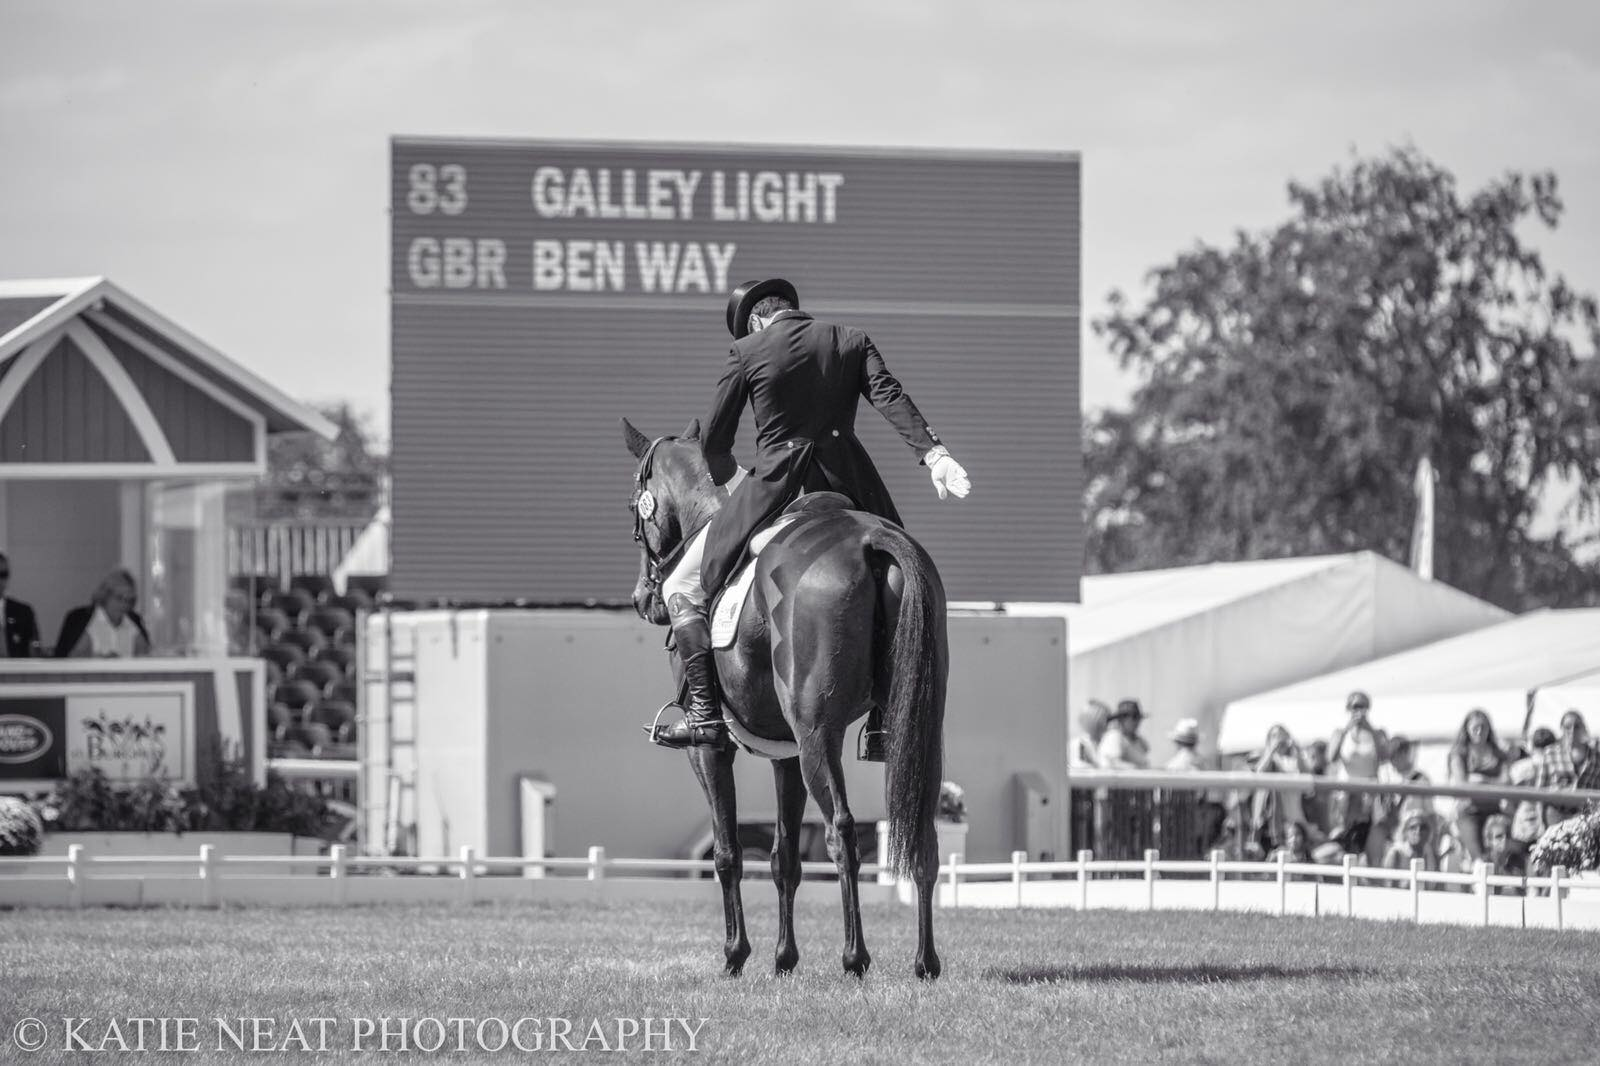 Ben Way gets a pleasing test out of Galley Light in the Dressage at Burghley 2018 #LRBHT